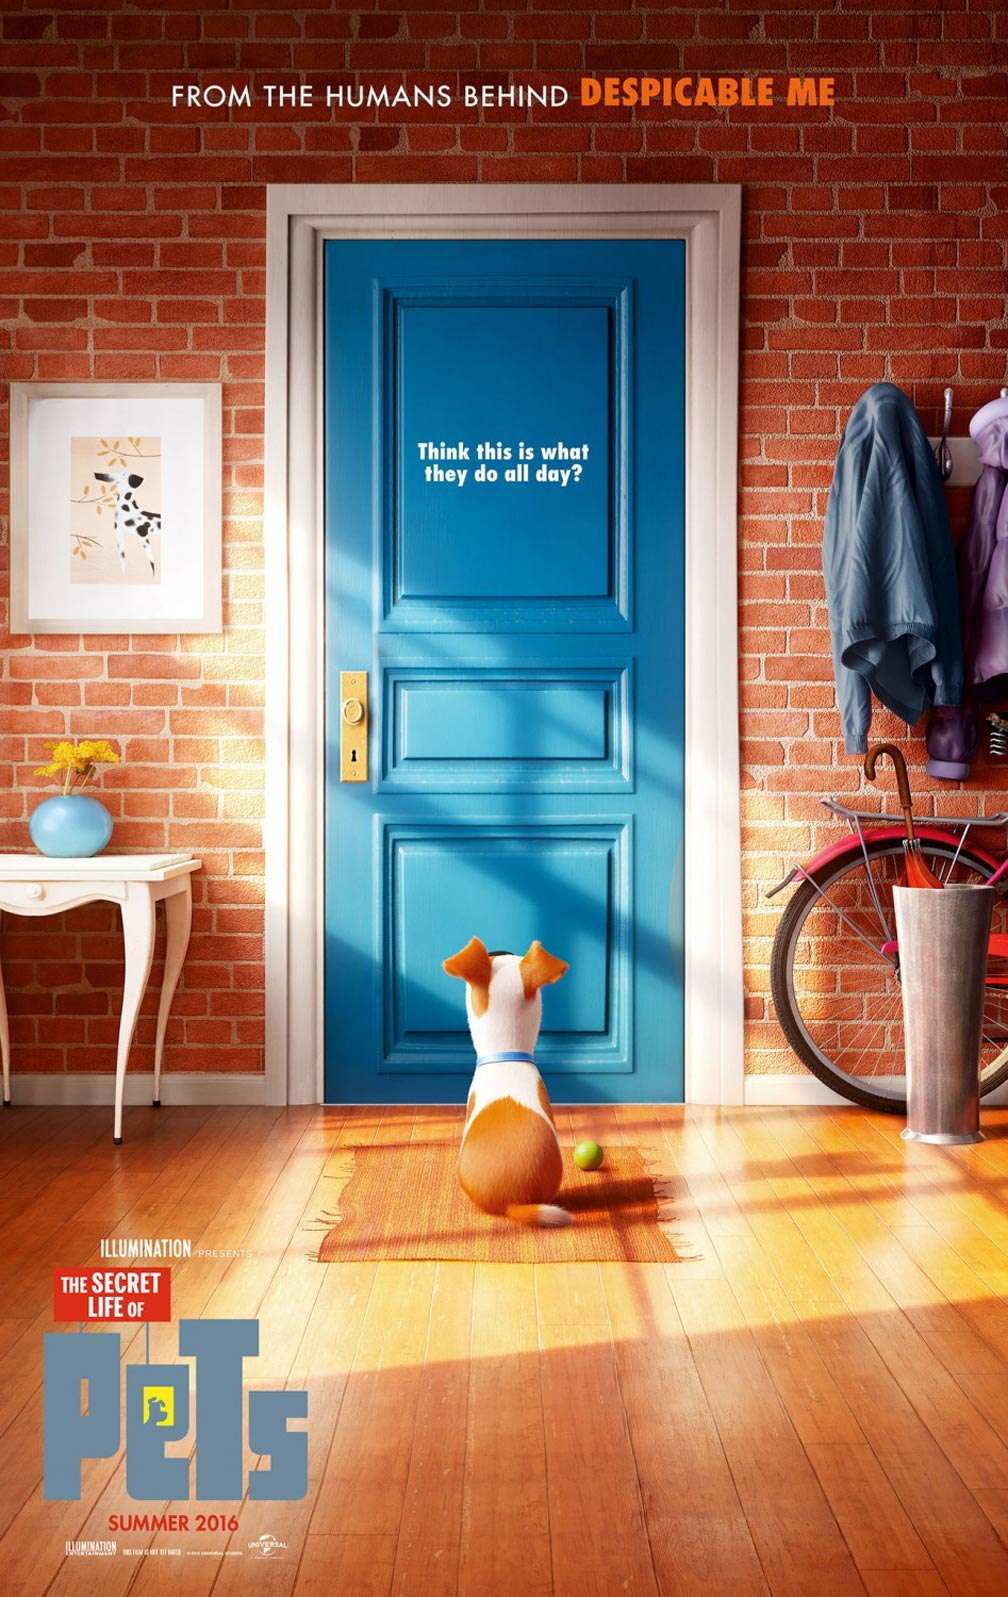 [The Secret Life of Pets poster]